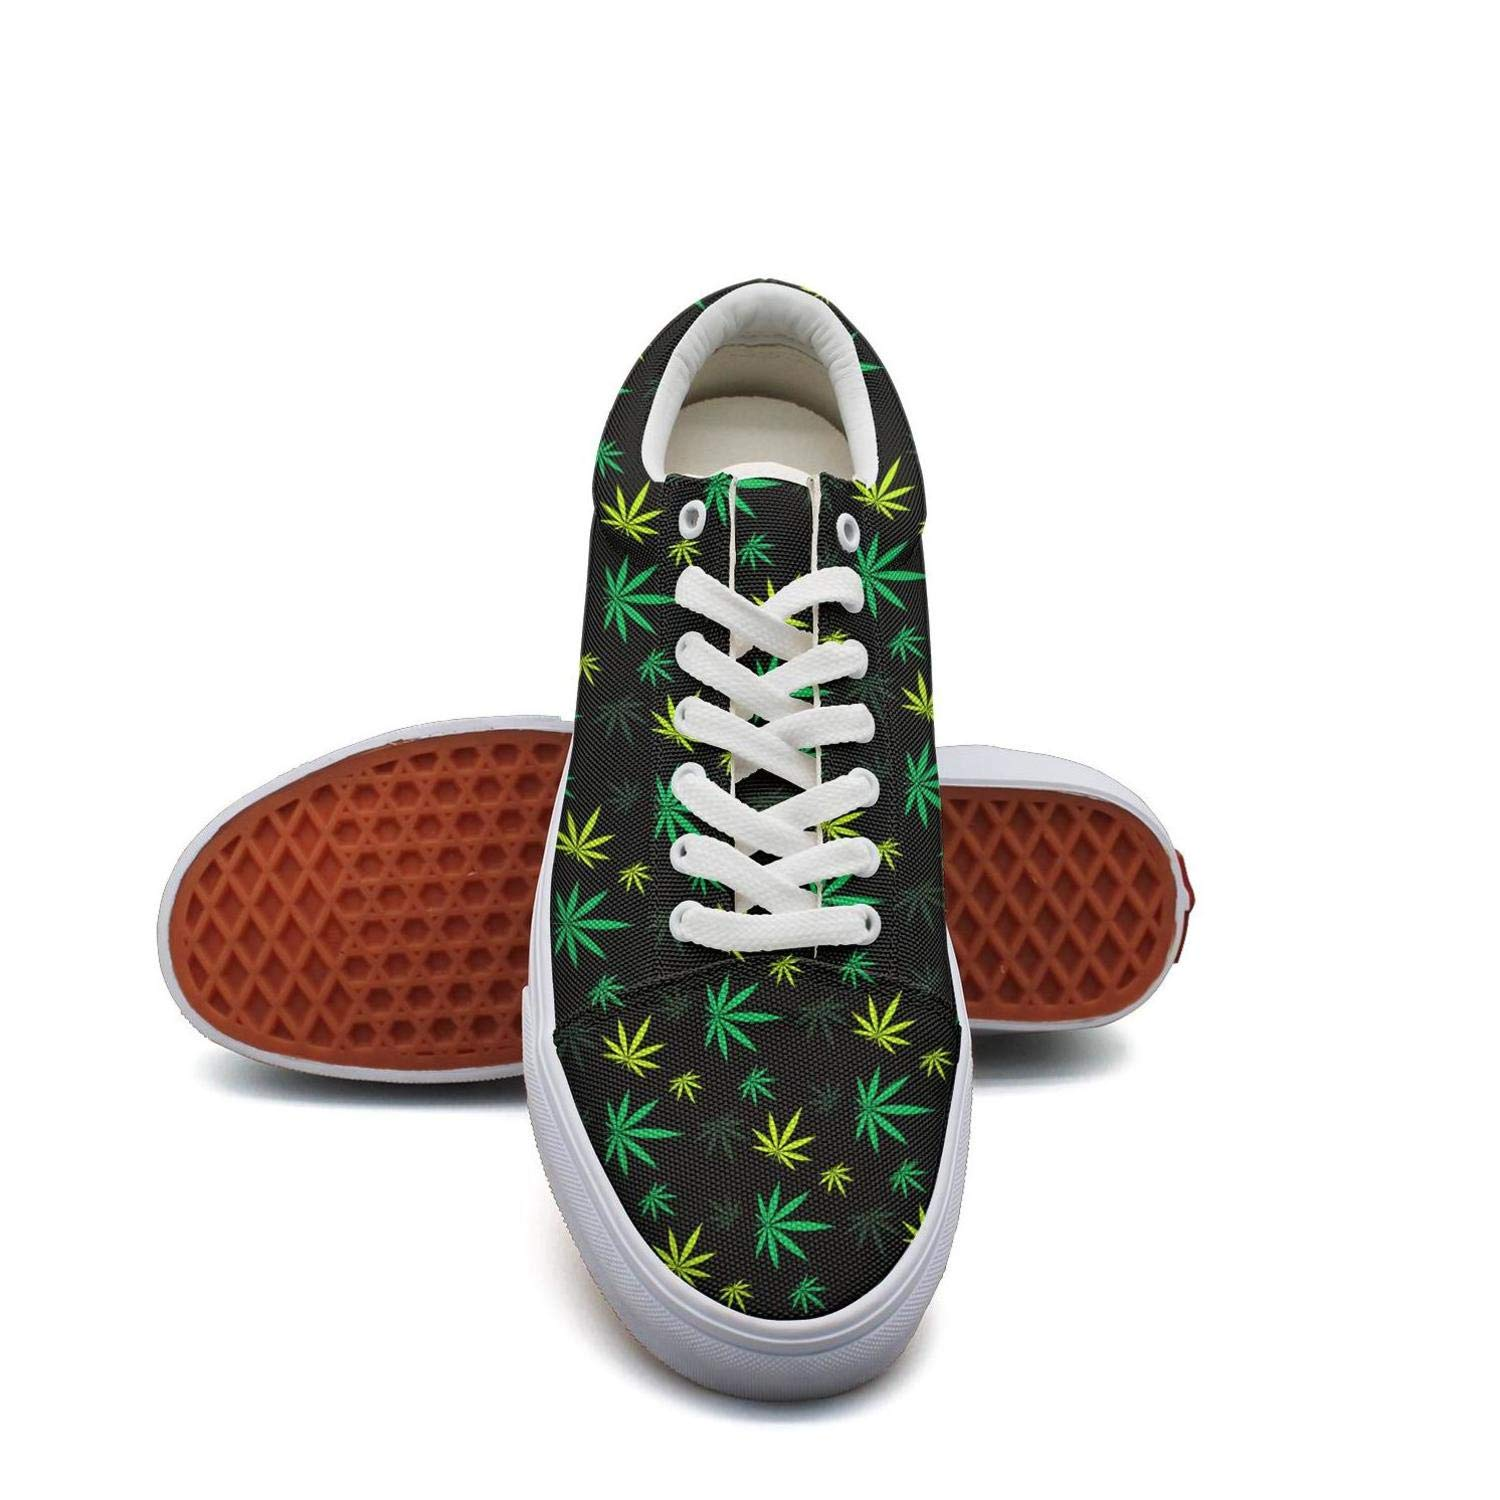 Opr7 Yellow Green Cannabis Patch Women Lace-Up Skate Shoes Canvas Upper Sneaker Breathable